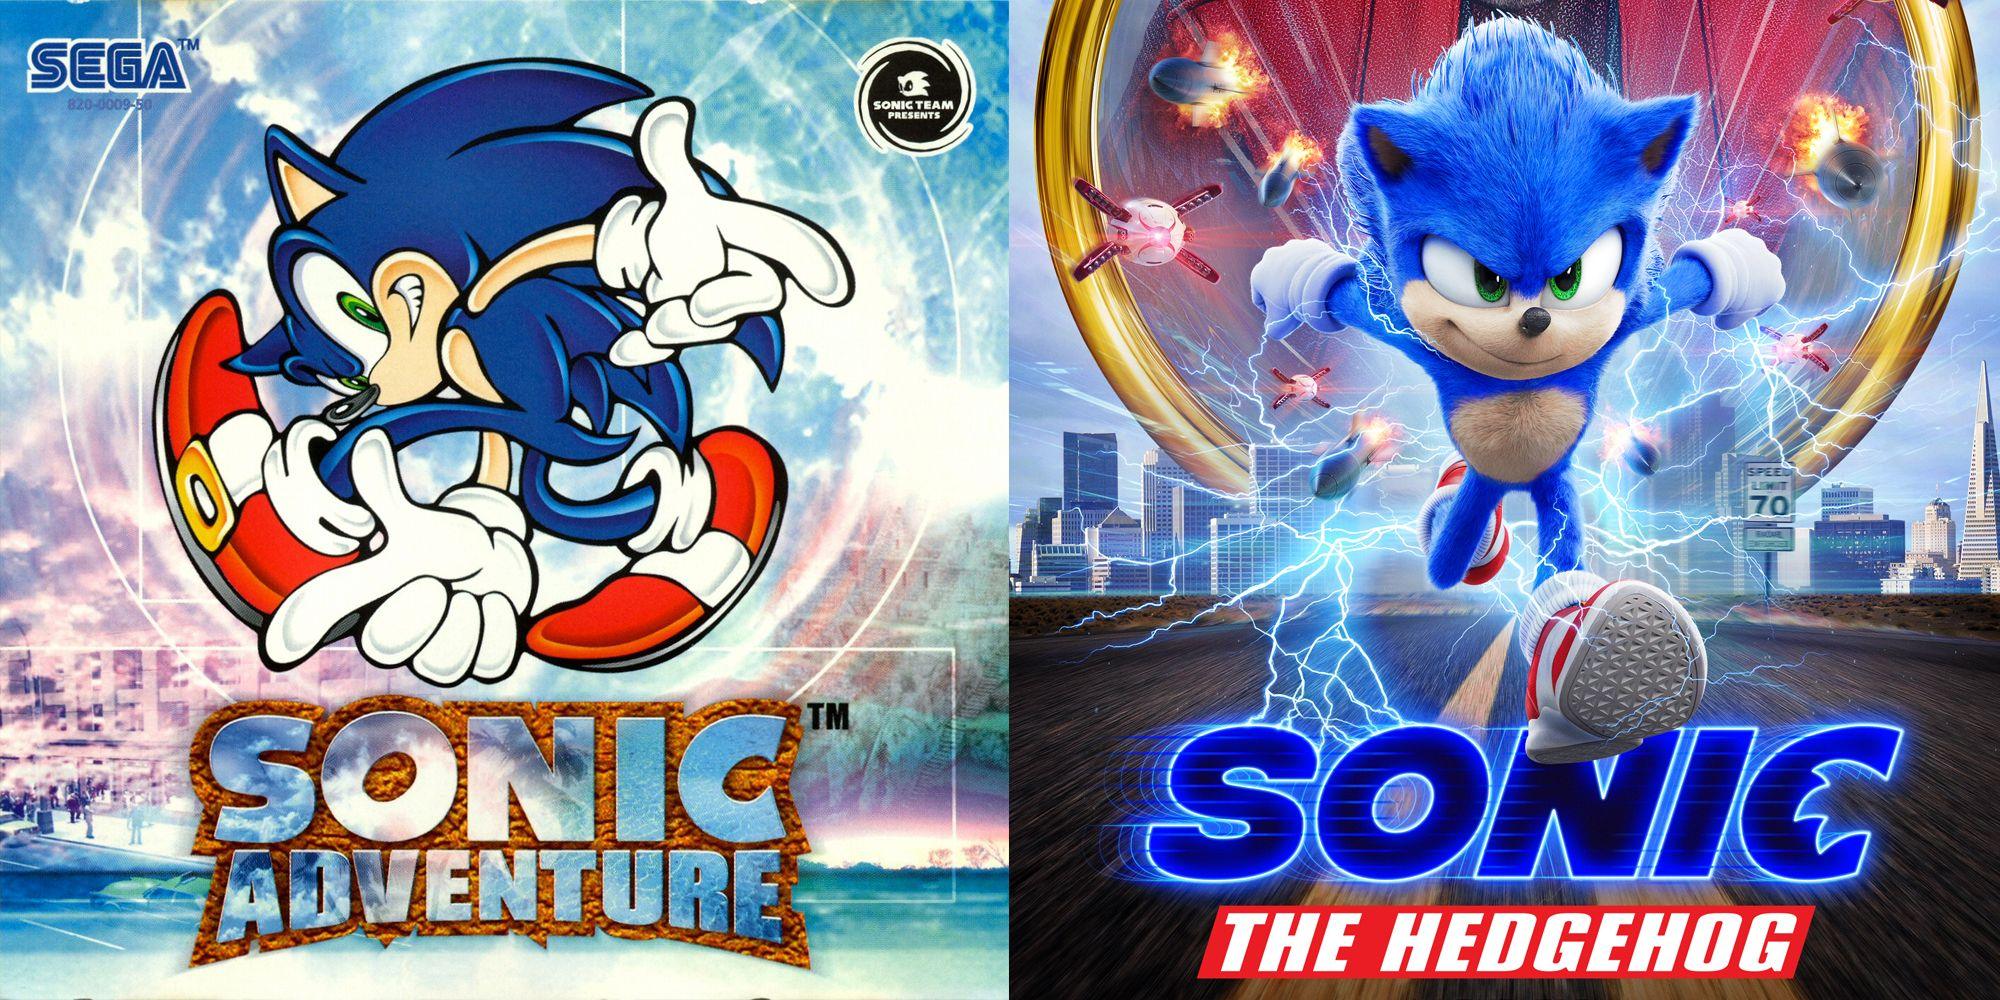 Sonic The Hedgehog Movie Is A Love Letter To The Adventure Games